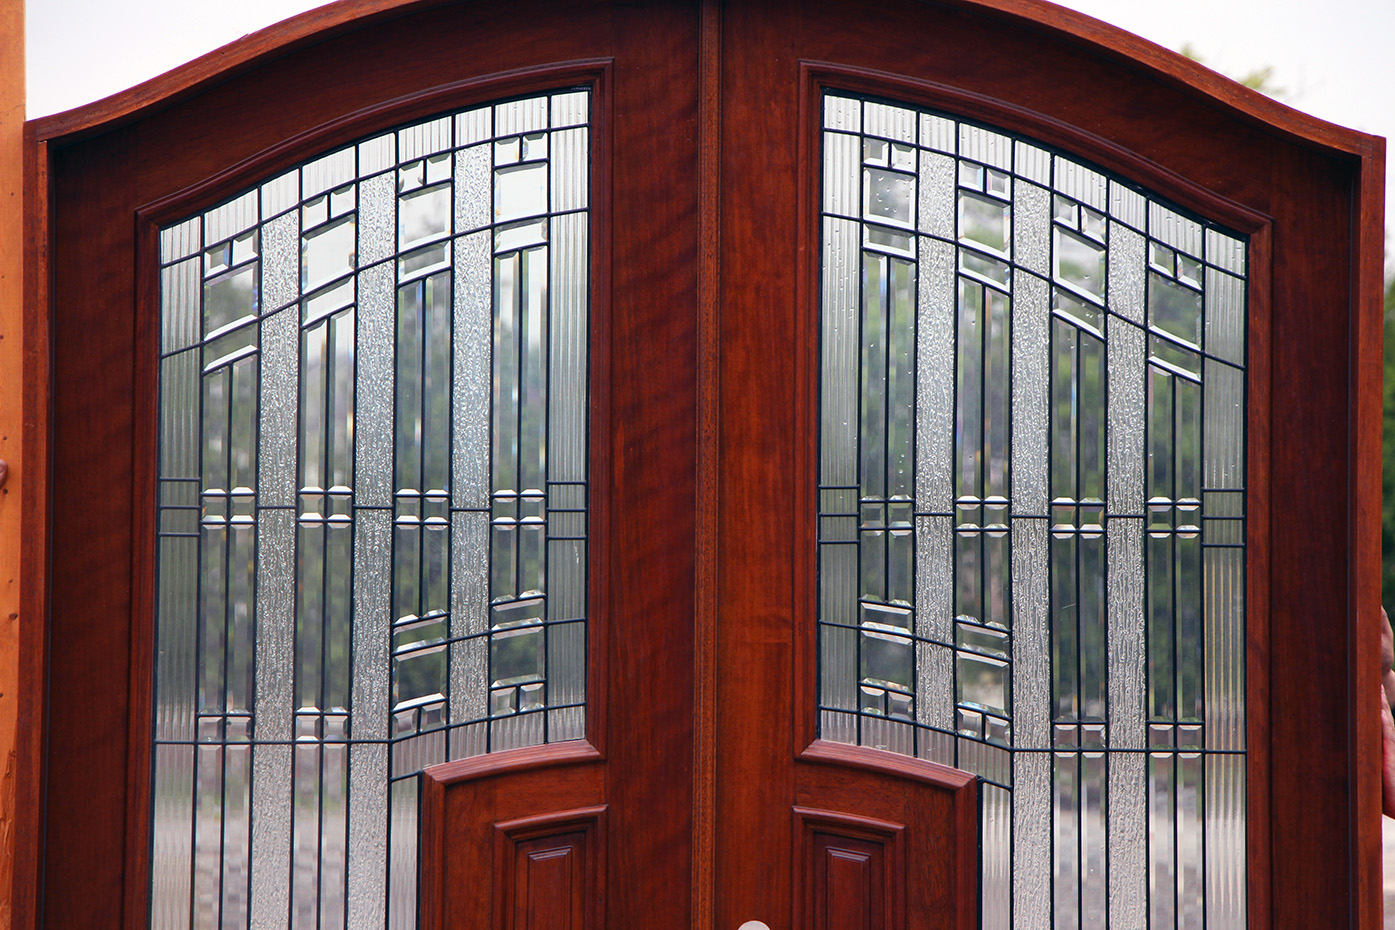 930 #6A241A African Mahogany Arched Top Double Doors save image Arch Doors Exterior 39771395